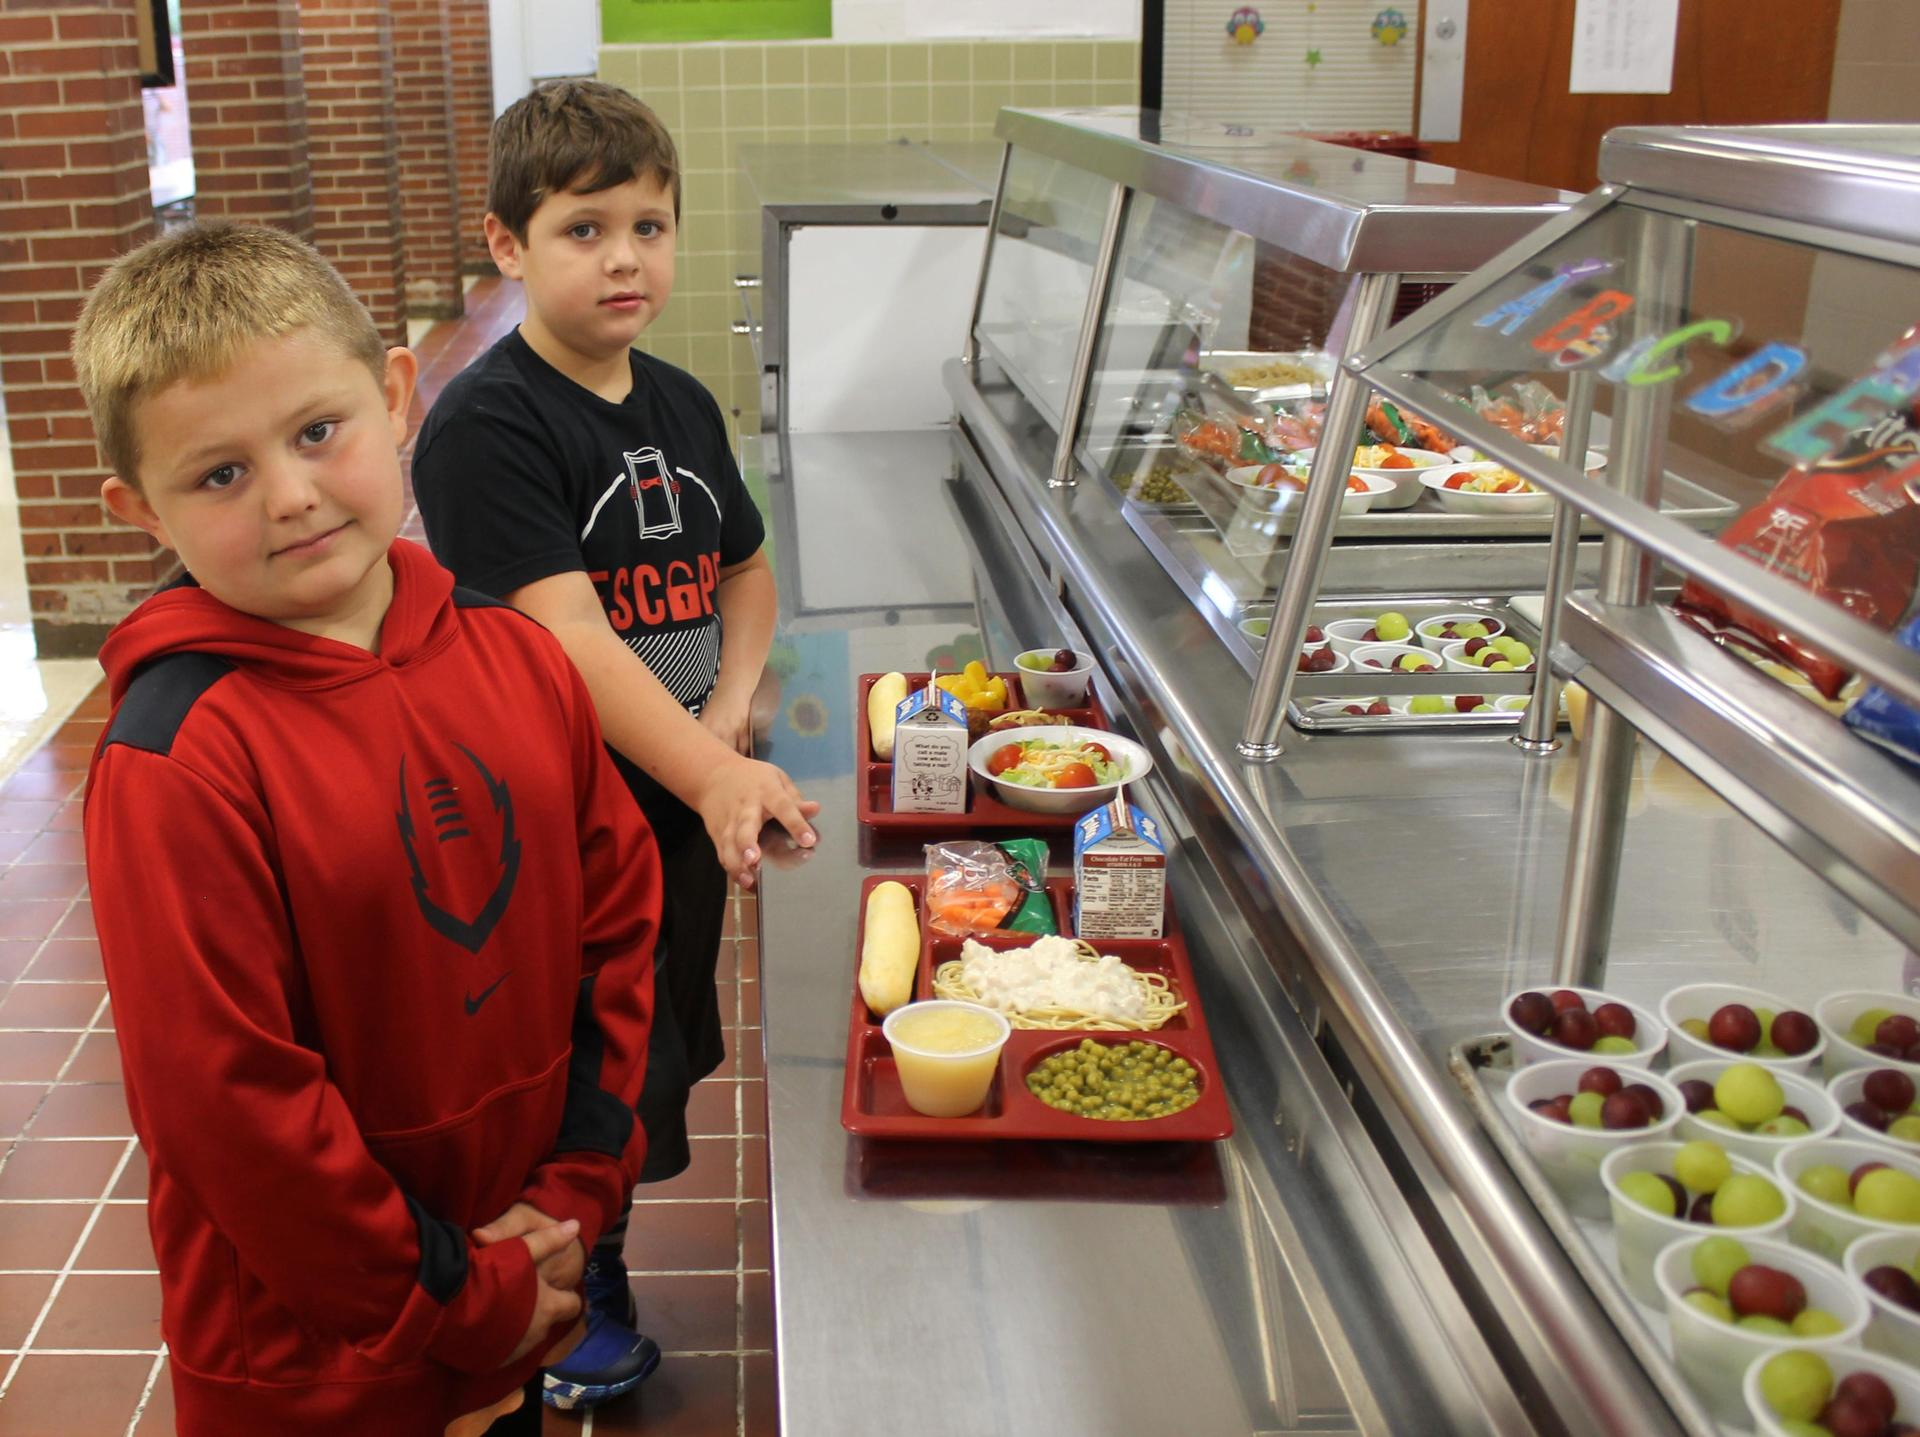 Students go through the lunch line at Ashland City Elementary School.